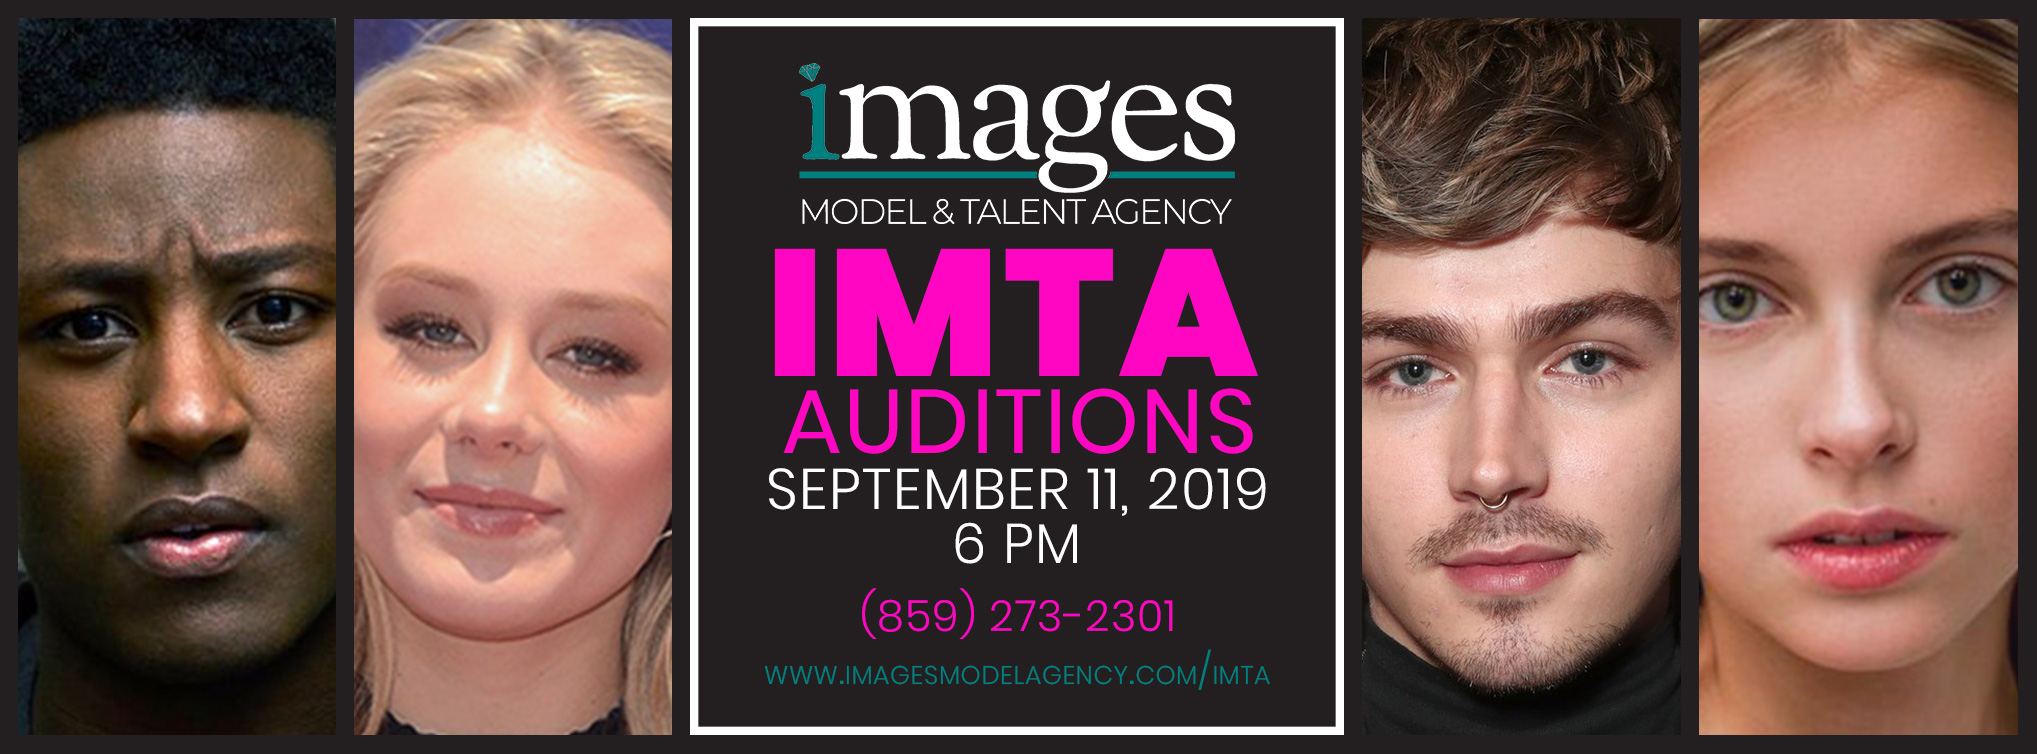 IMTA Auditions Sept 11 6pm @ IMAGES